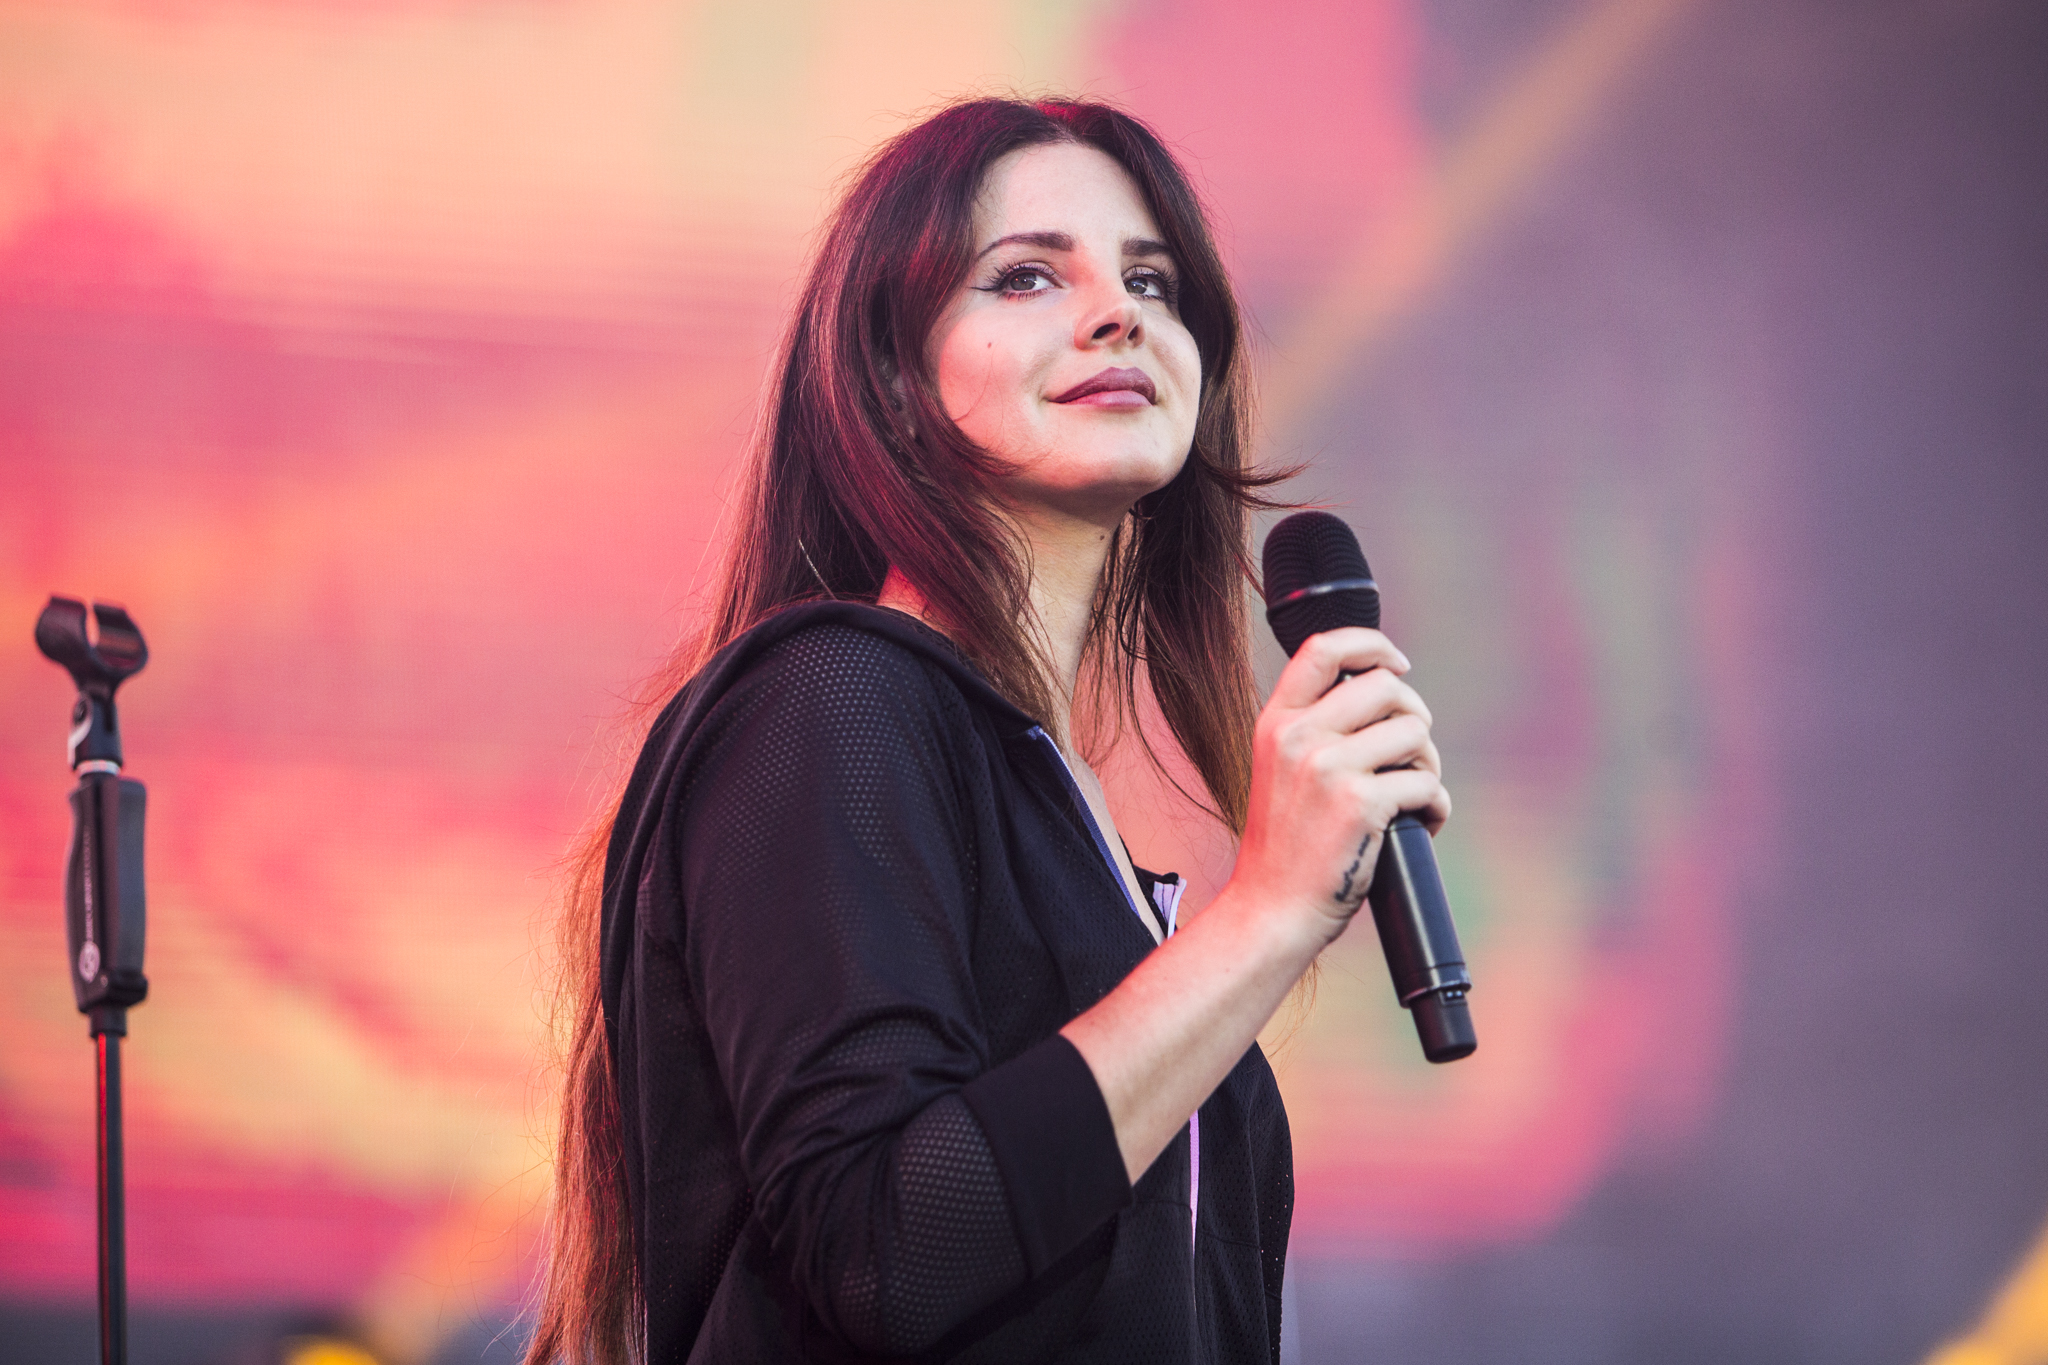 Lana Del Rey, photo by Philip Cosores